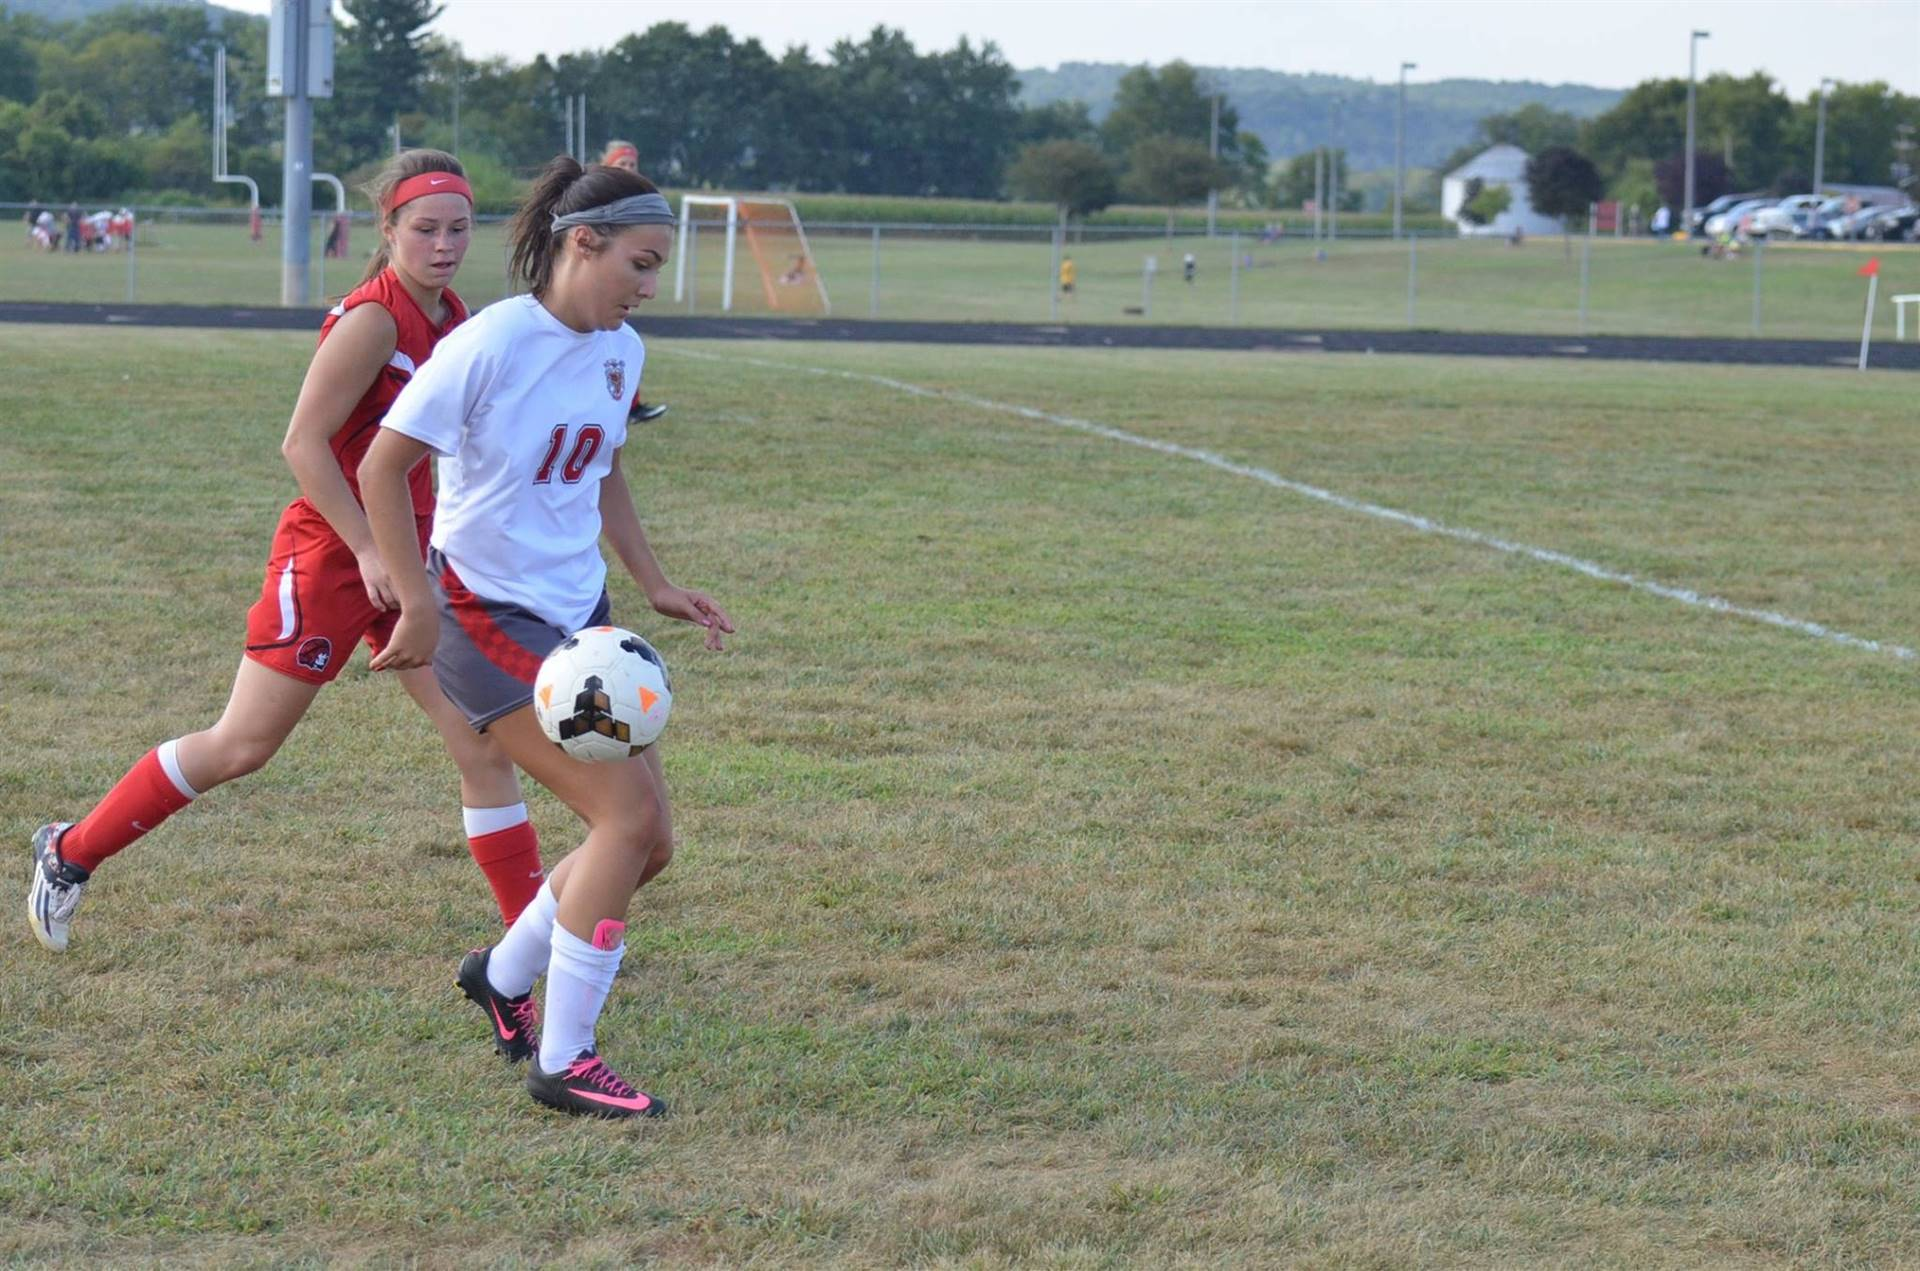 Ally Crothers keeping the ball from getting stolen.